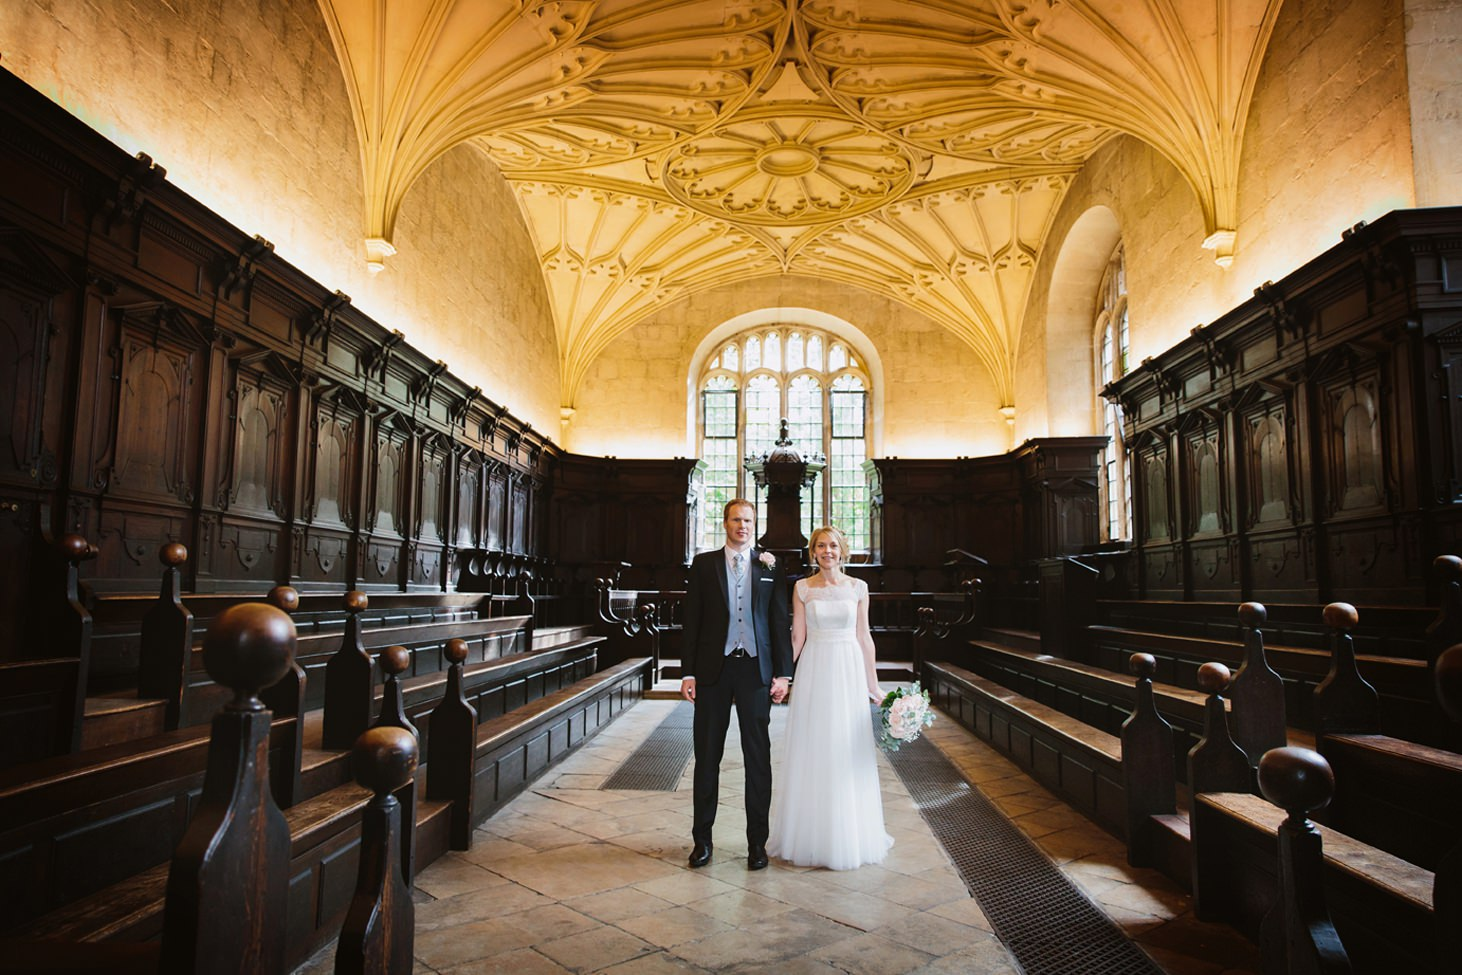 Bodleian library wedding bride and groom in empty library